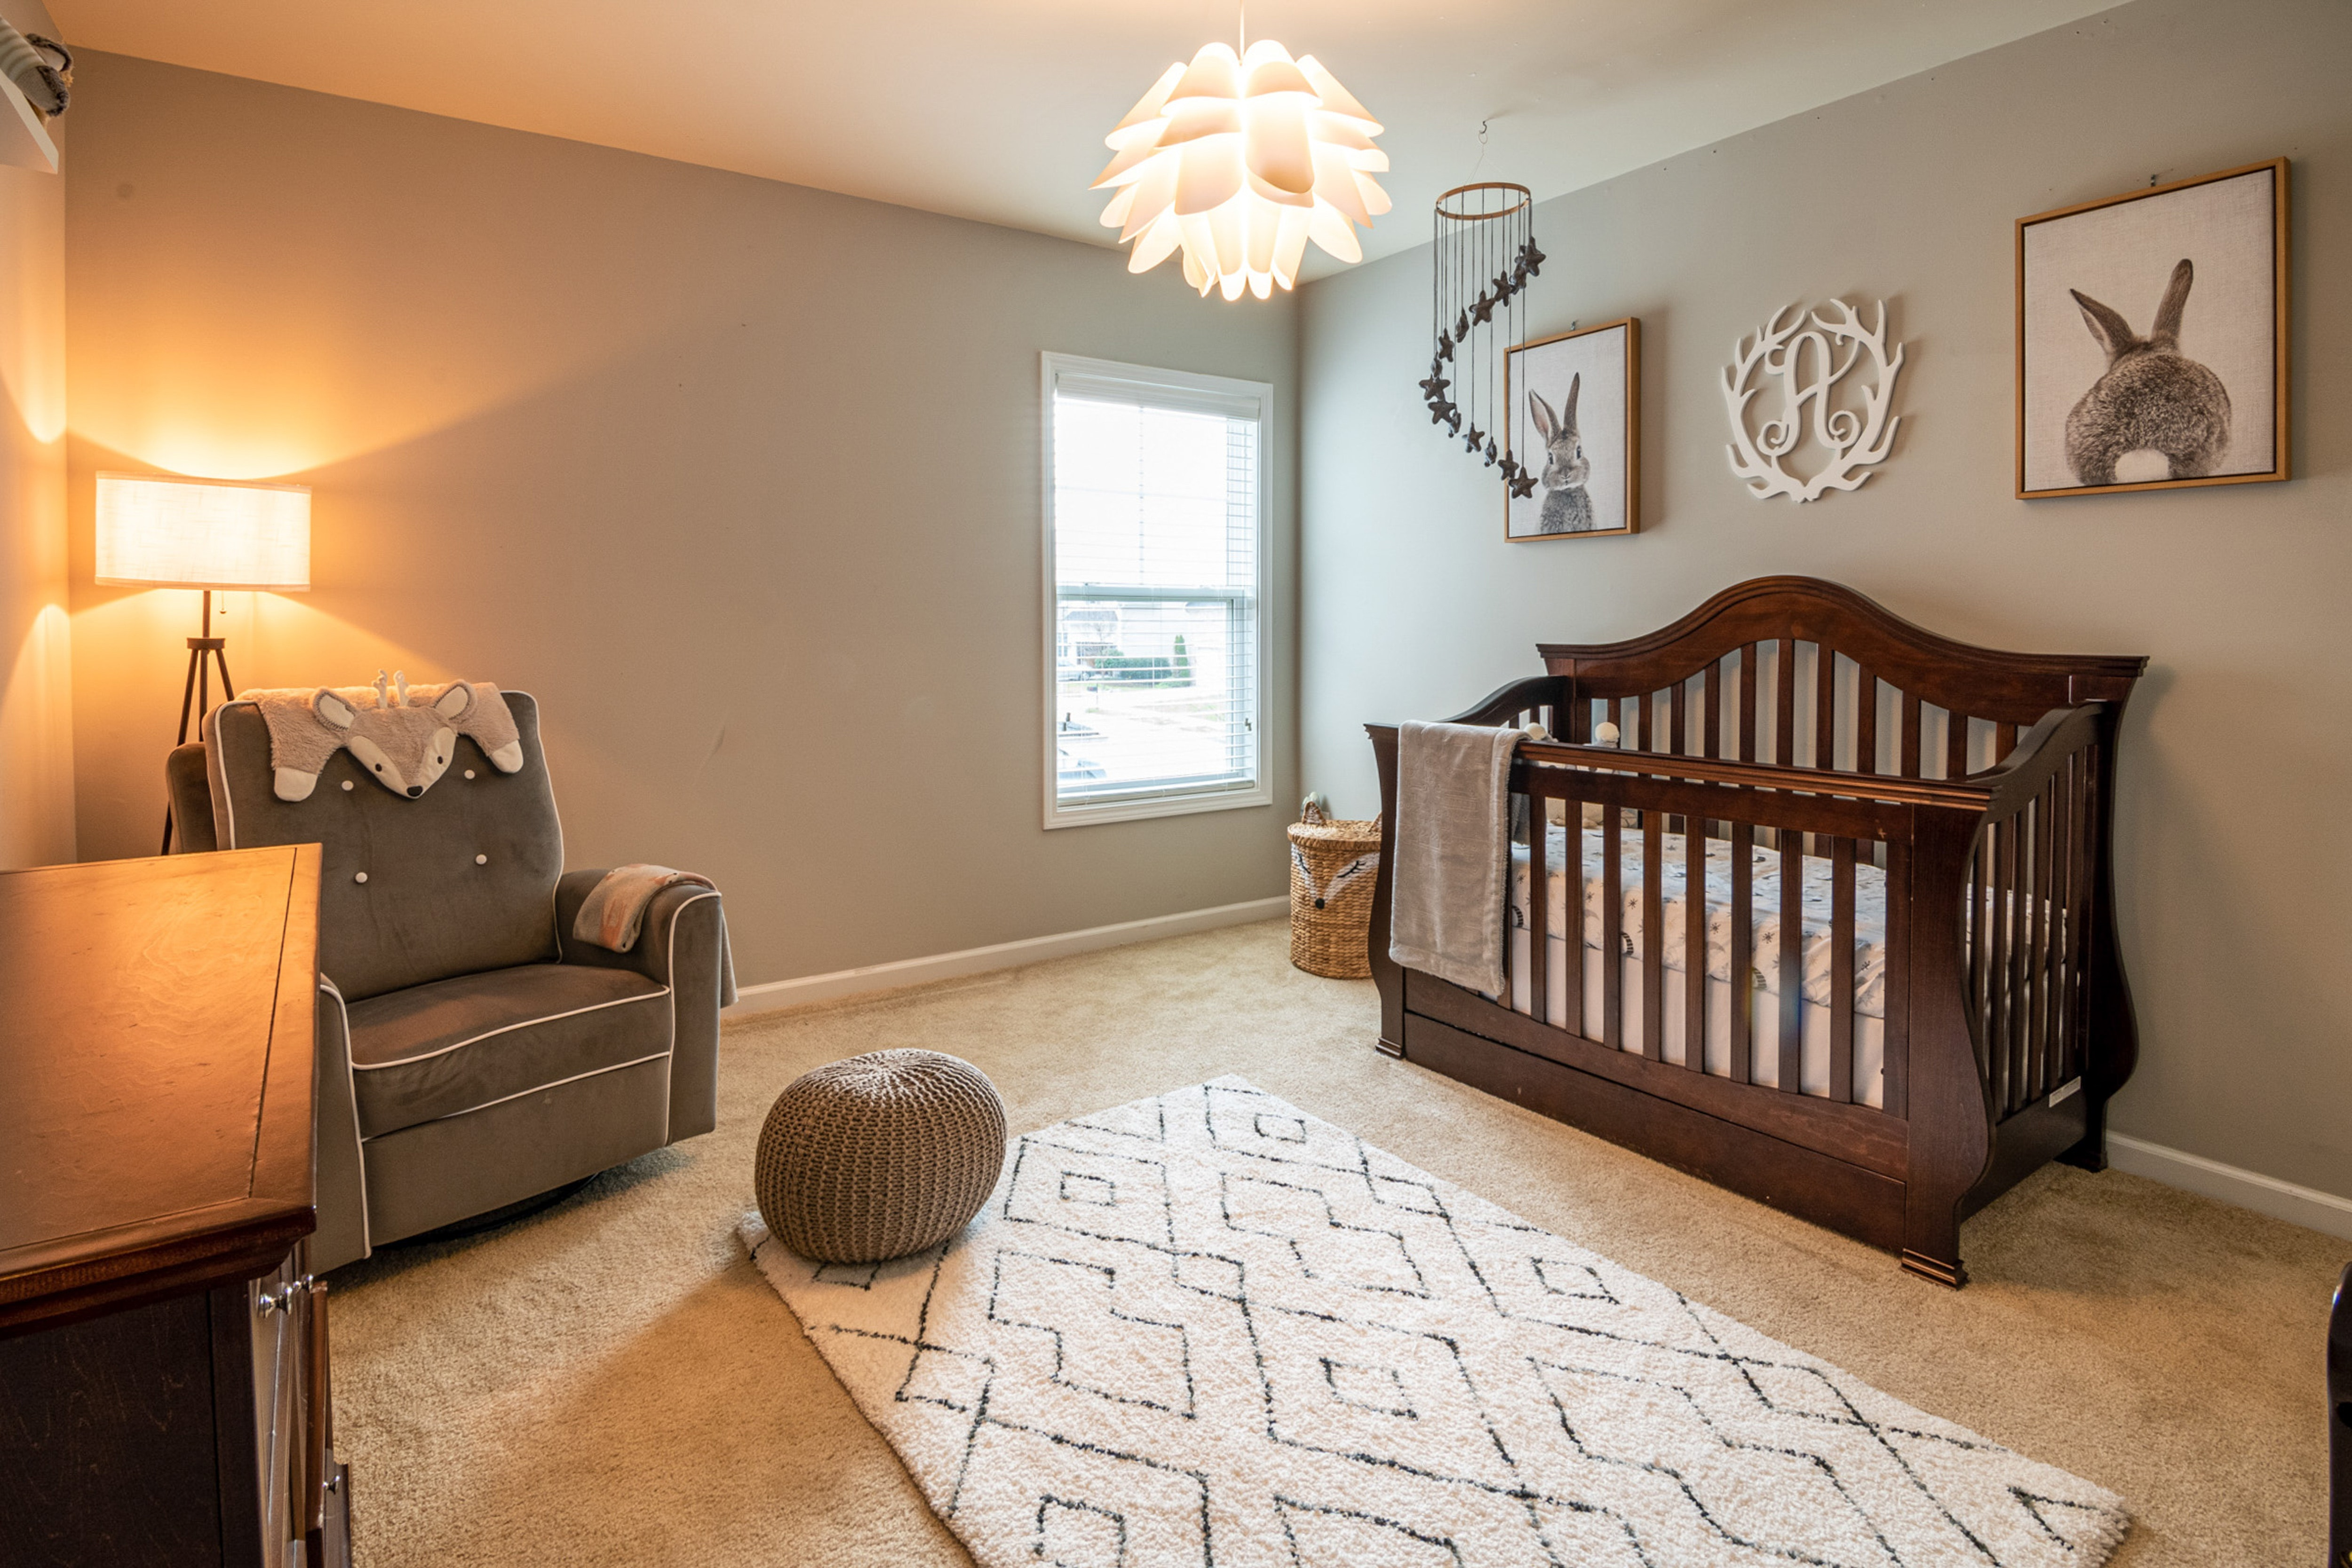 Transitioning Your Baby into Their Own Room